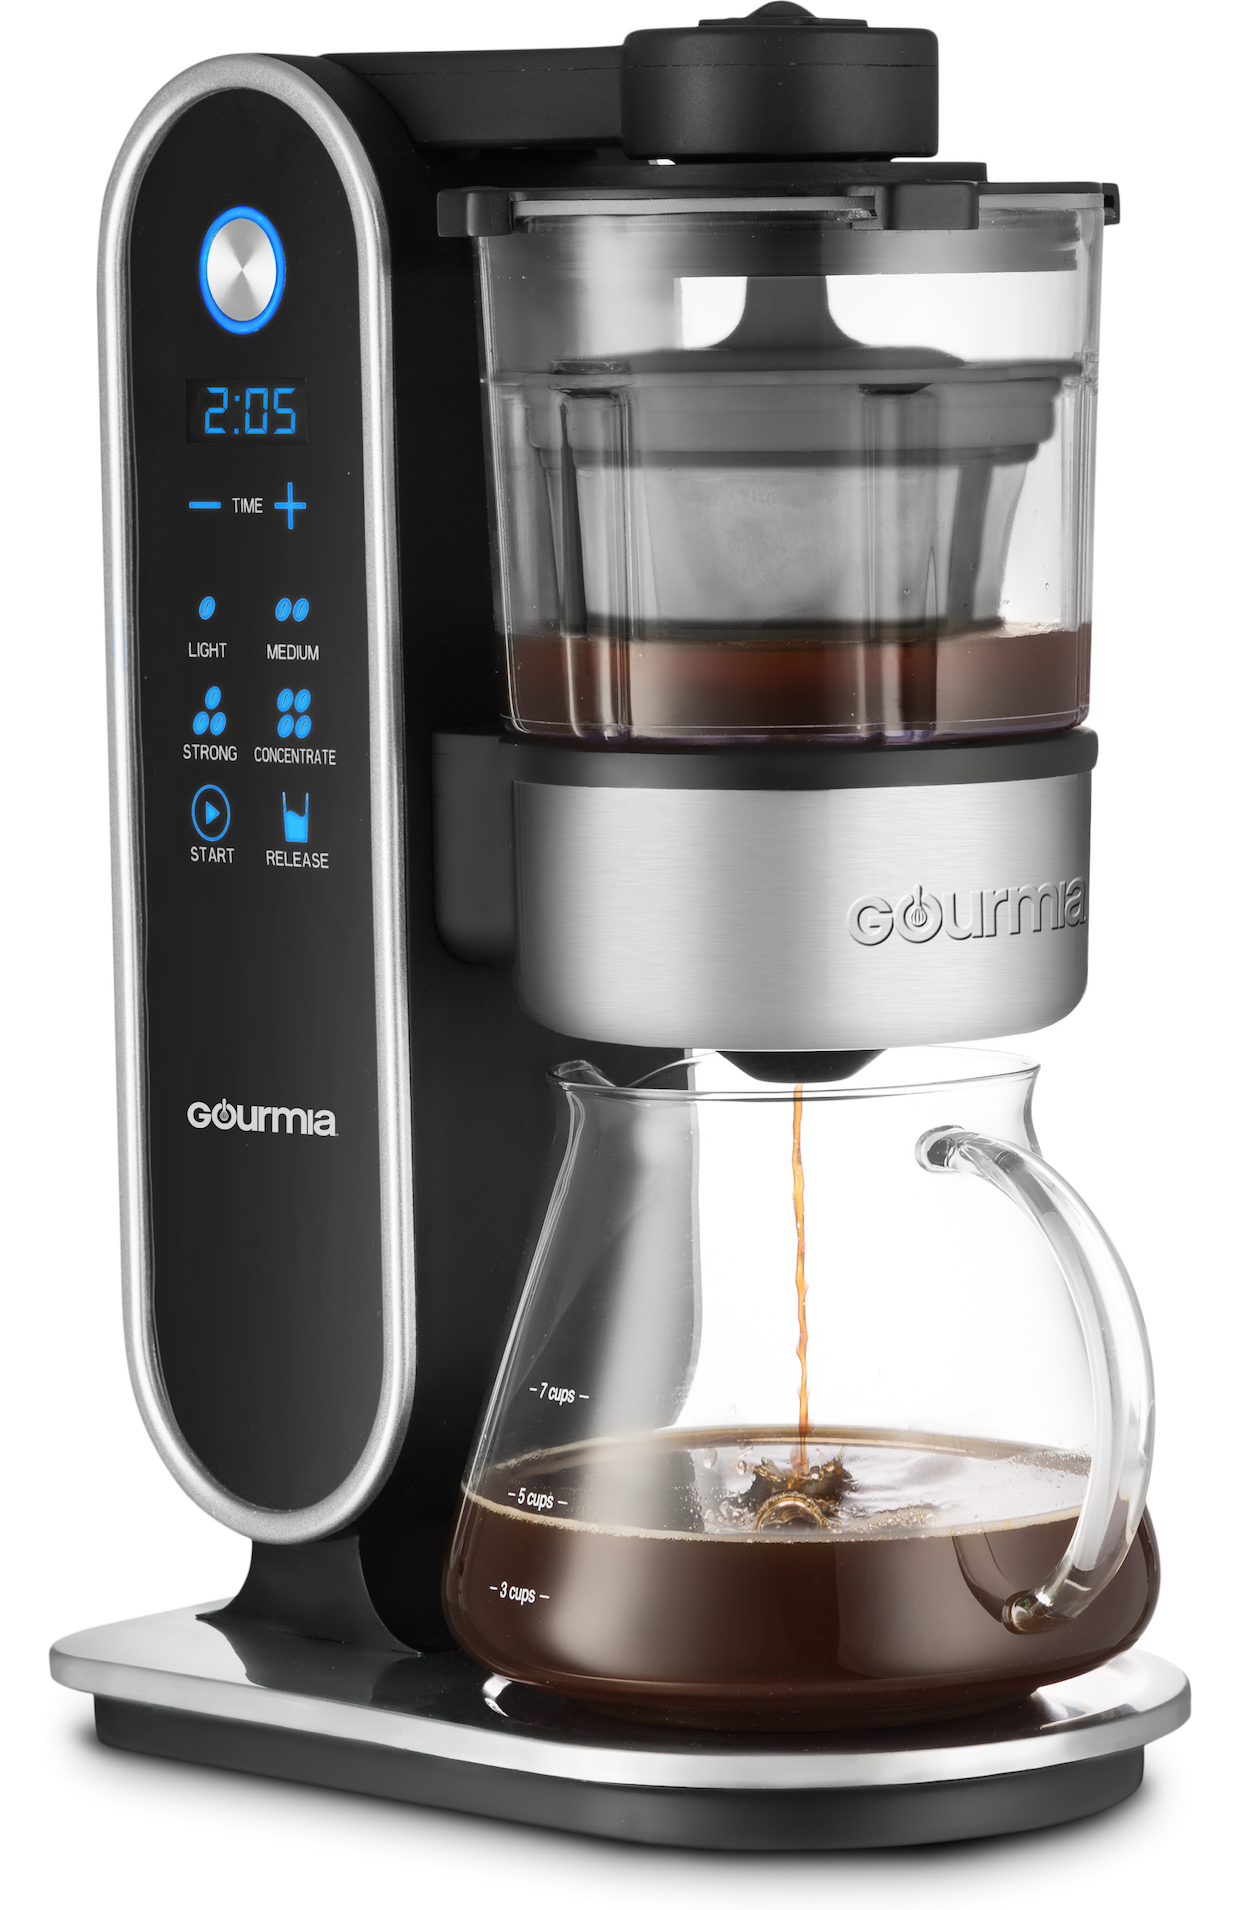 Gourmia coffee home brewing